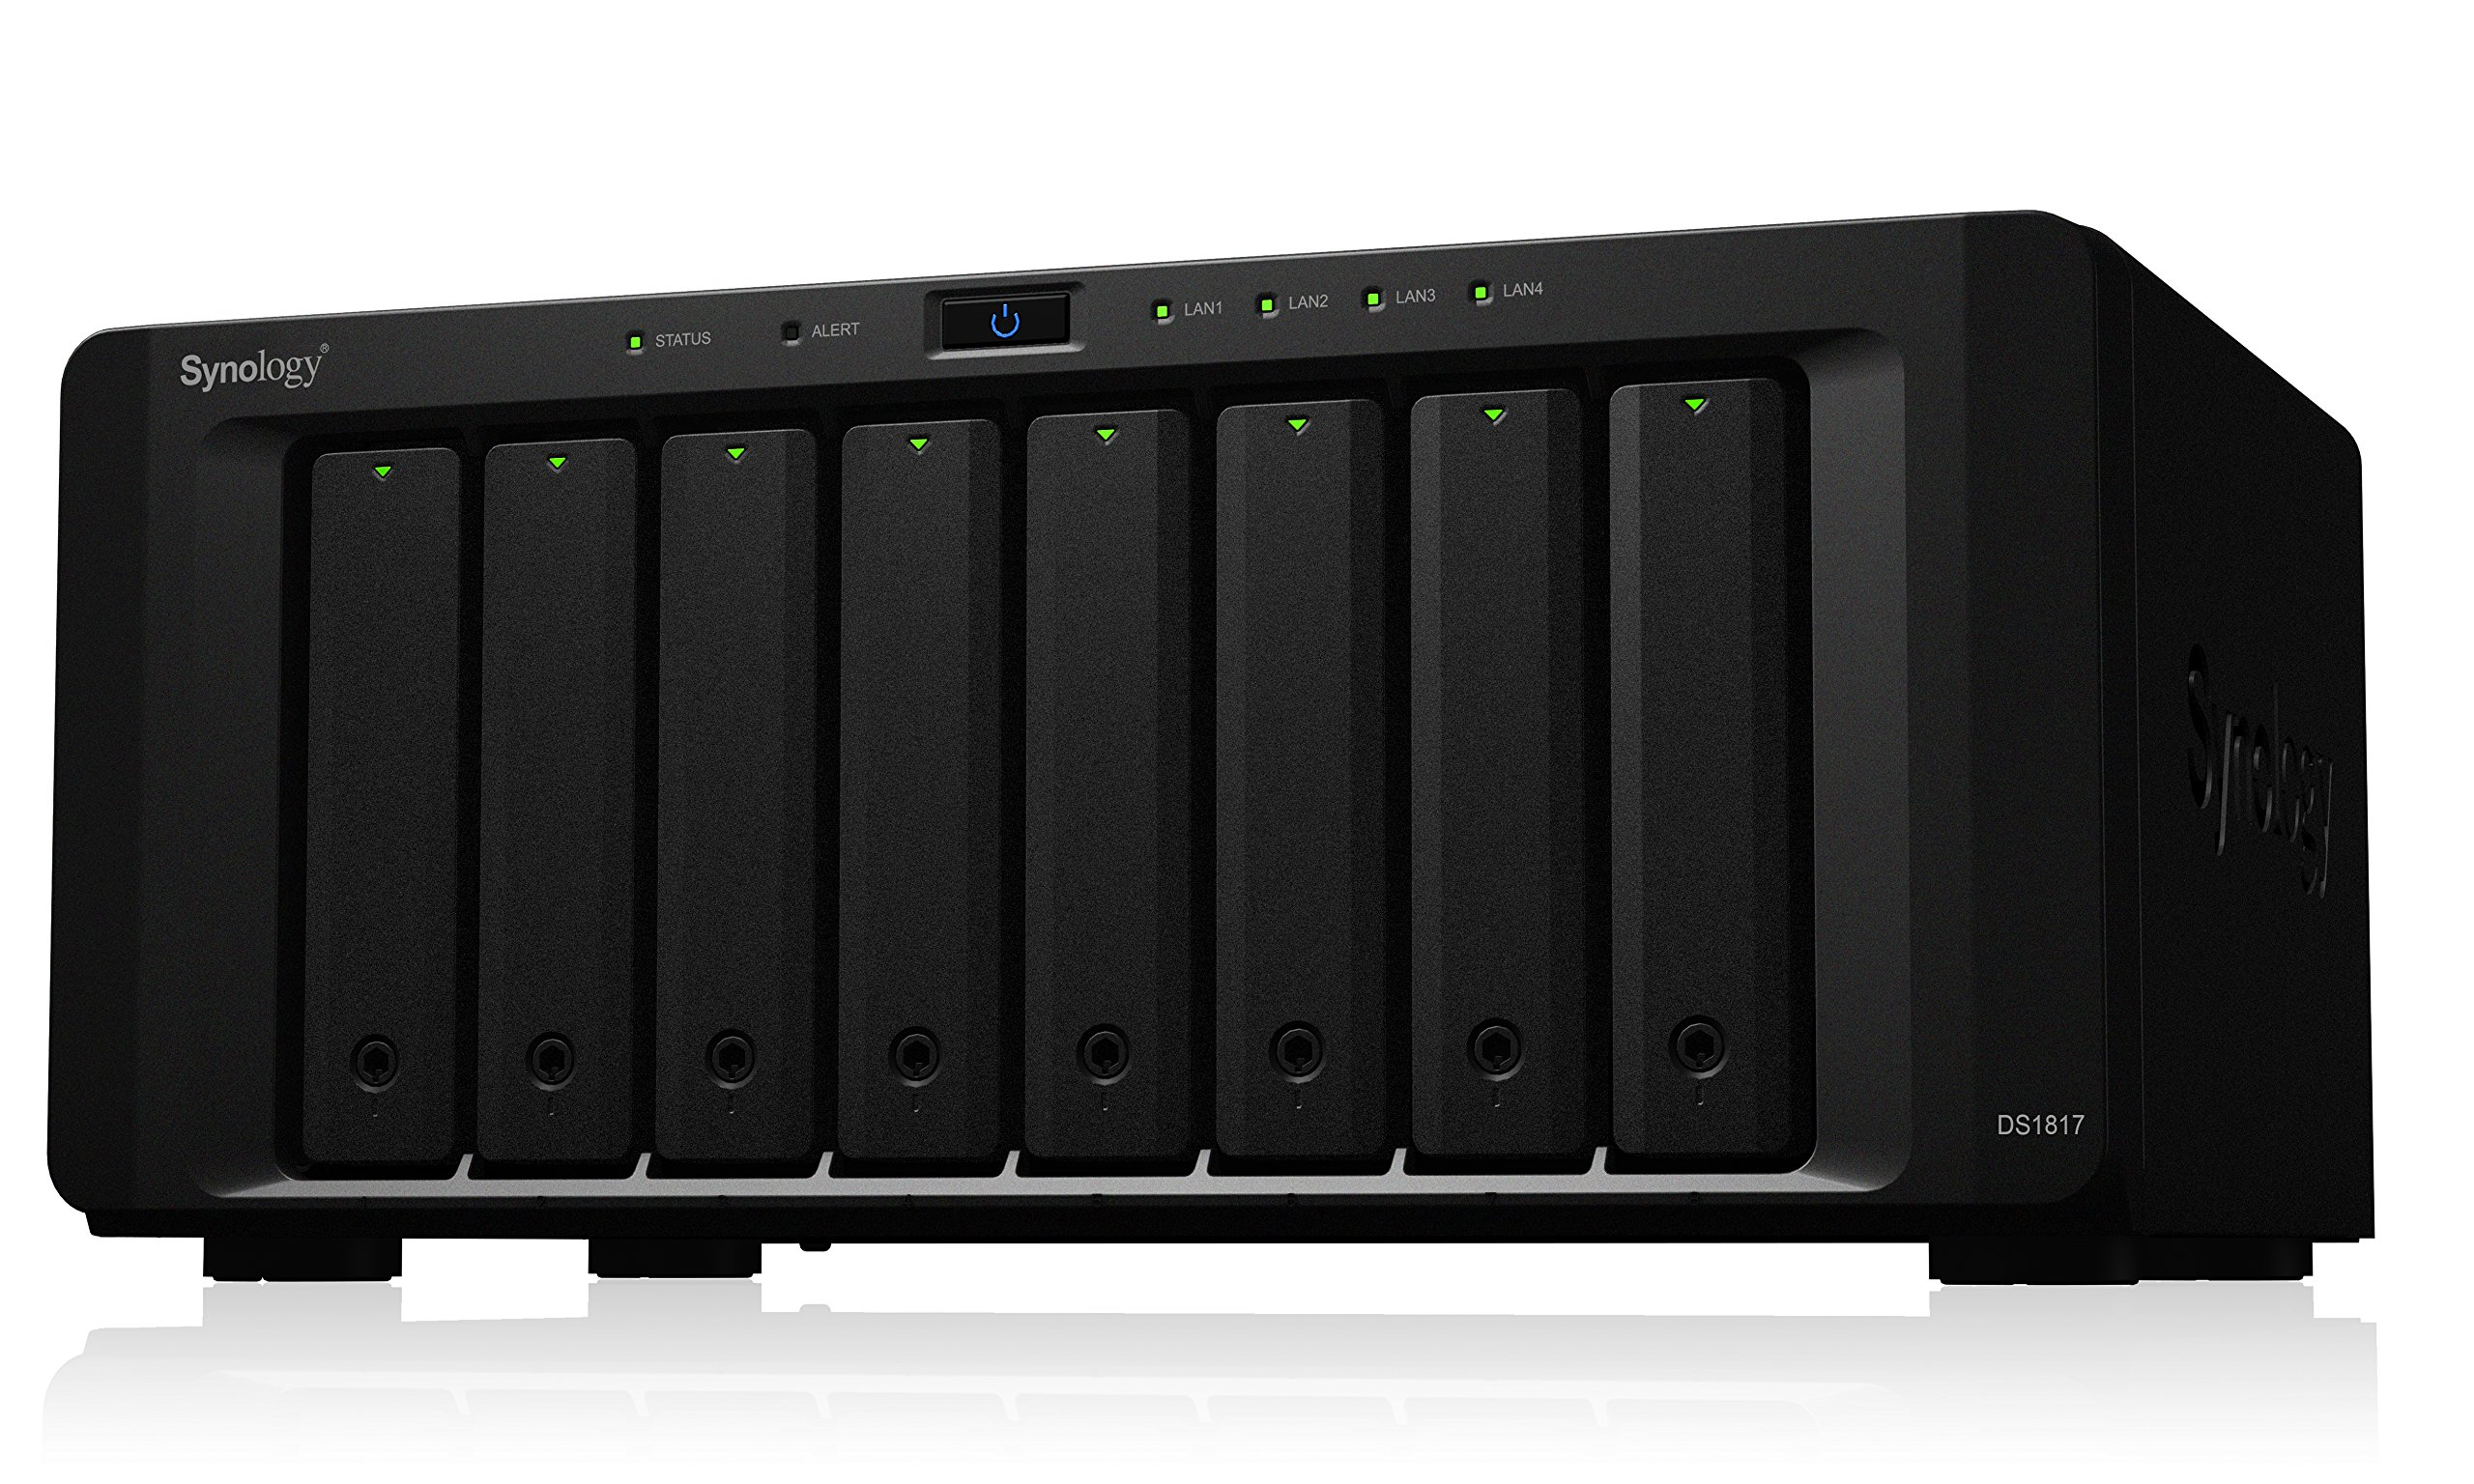 Synology 8 bay NAS DiskStation DS1817 (Diskless)